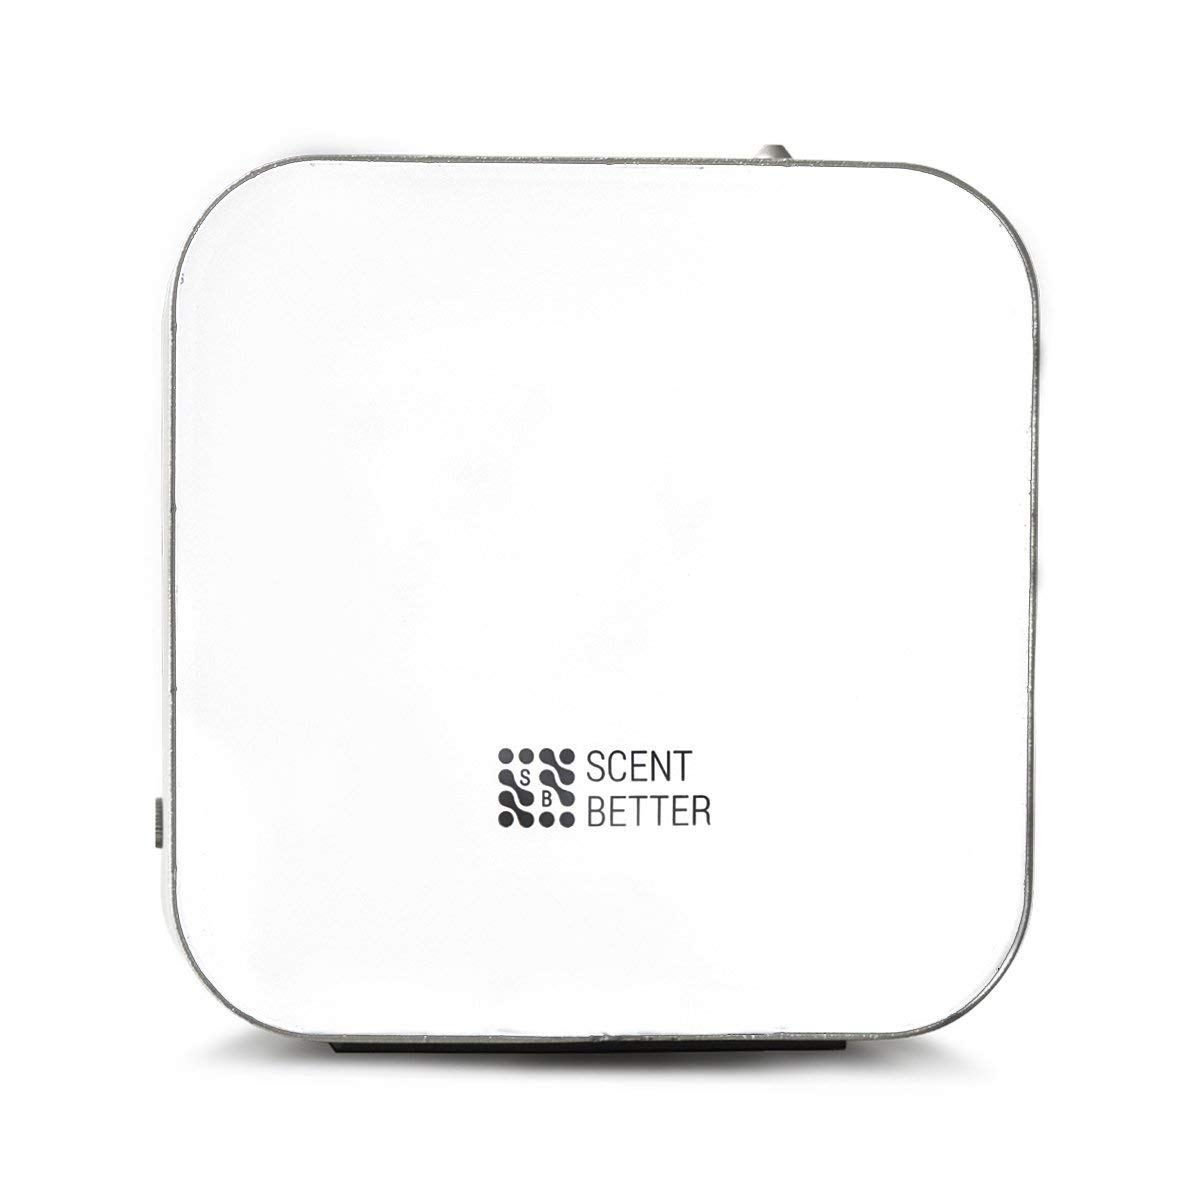 SB-1500 BT Scent Diffuser - White. by Scent Better (Image #1)